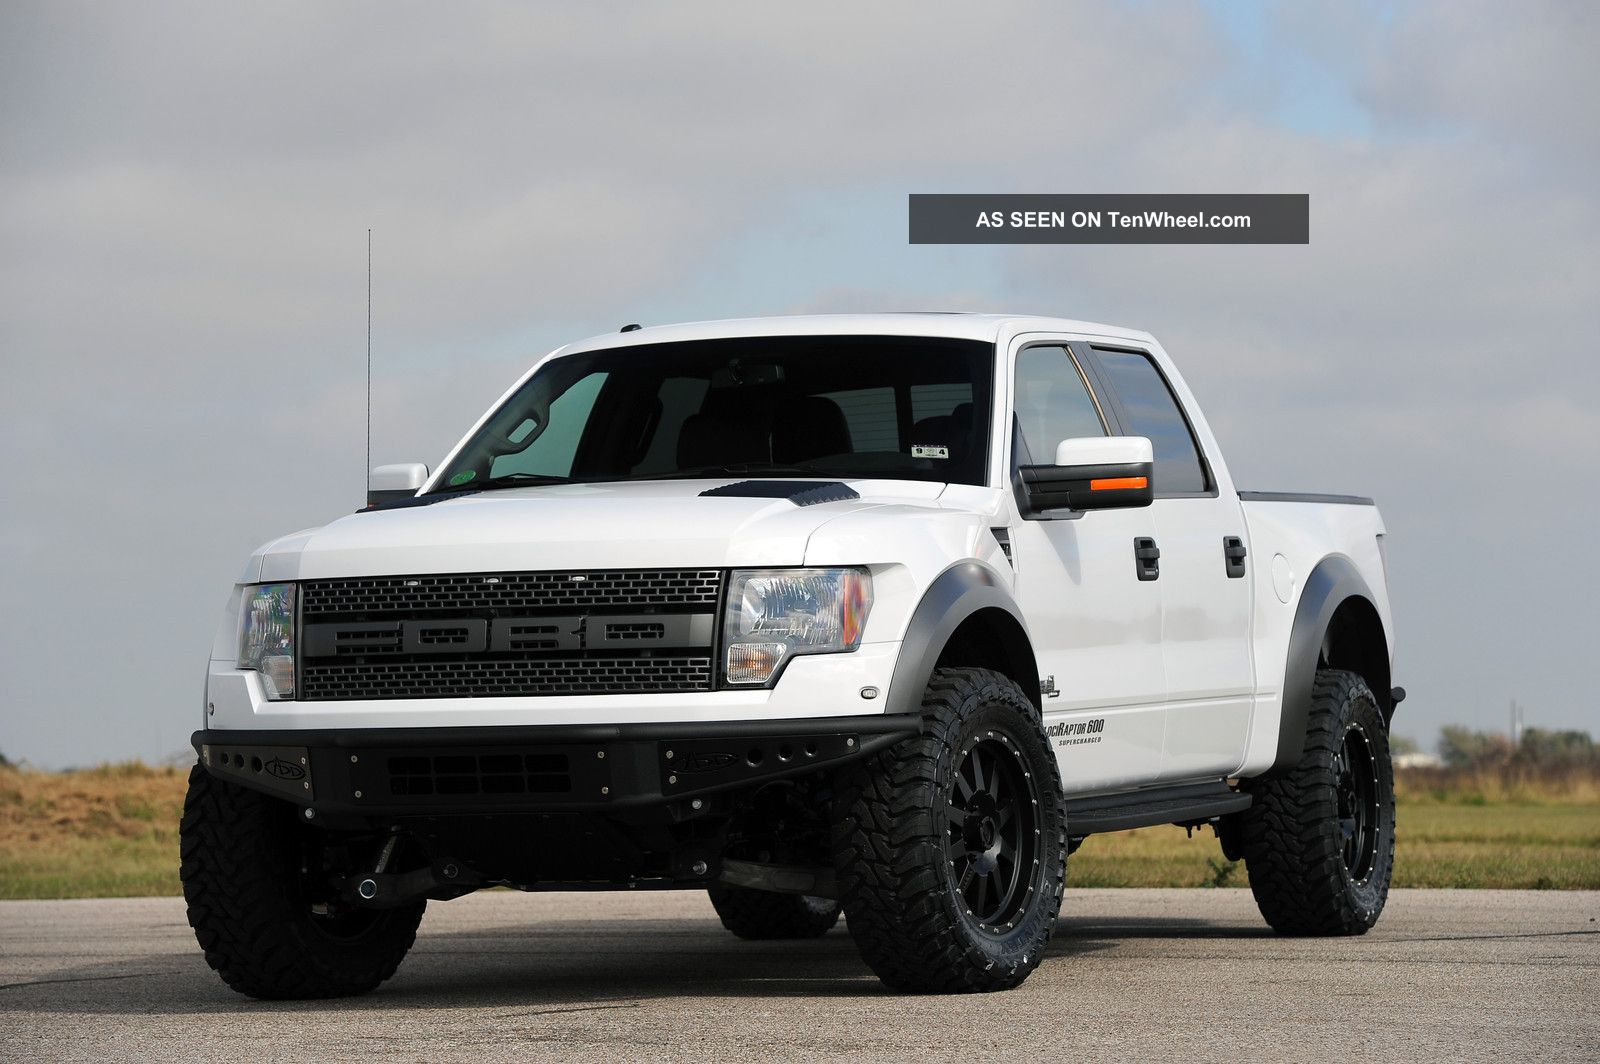 605 Hp Supercharged Hennessey Velociraptor 600 Ford Raptor Truck Svt 2013 F-150 photo